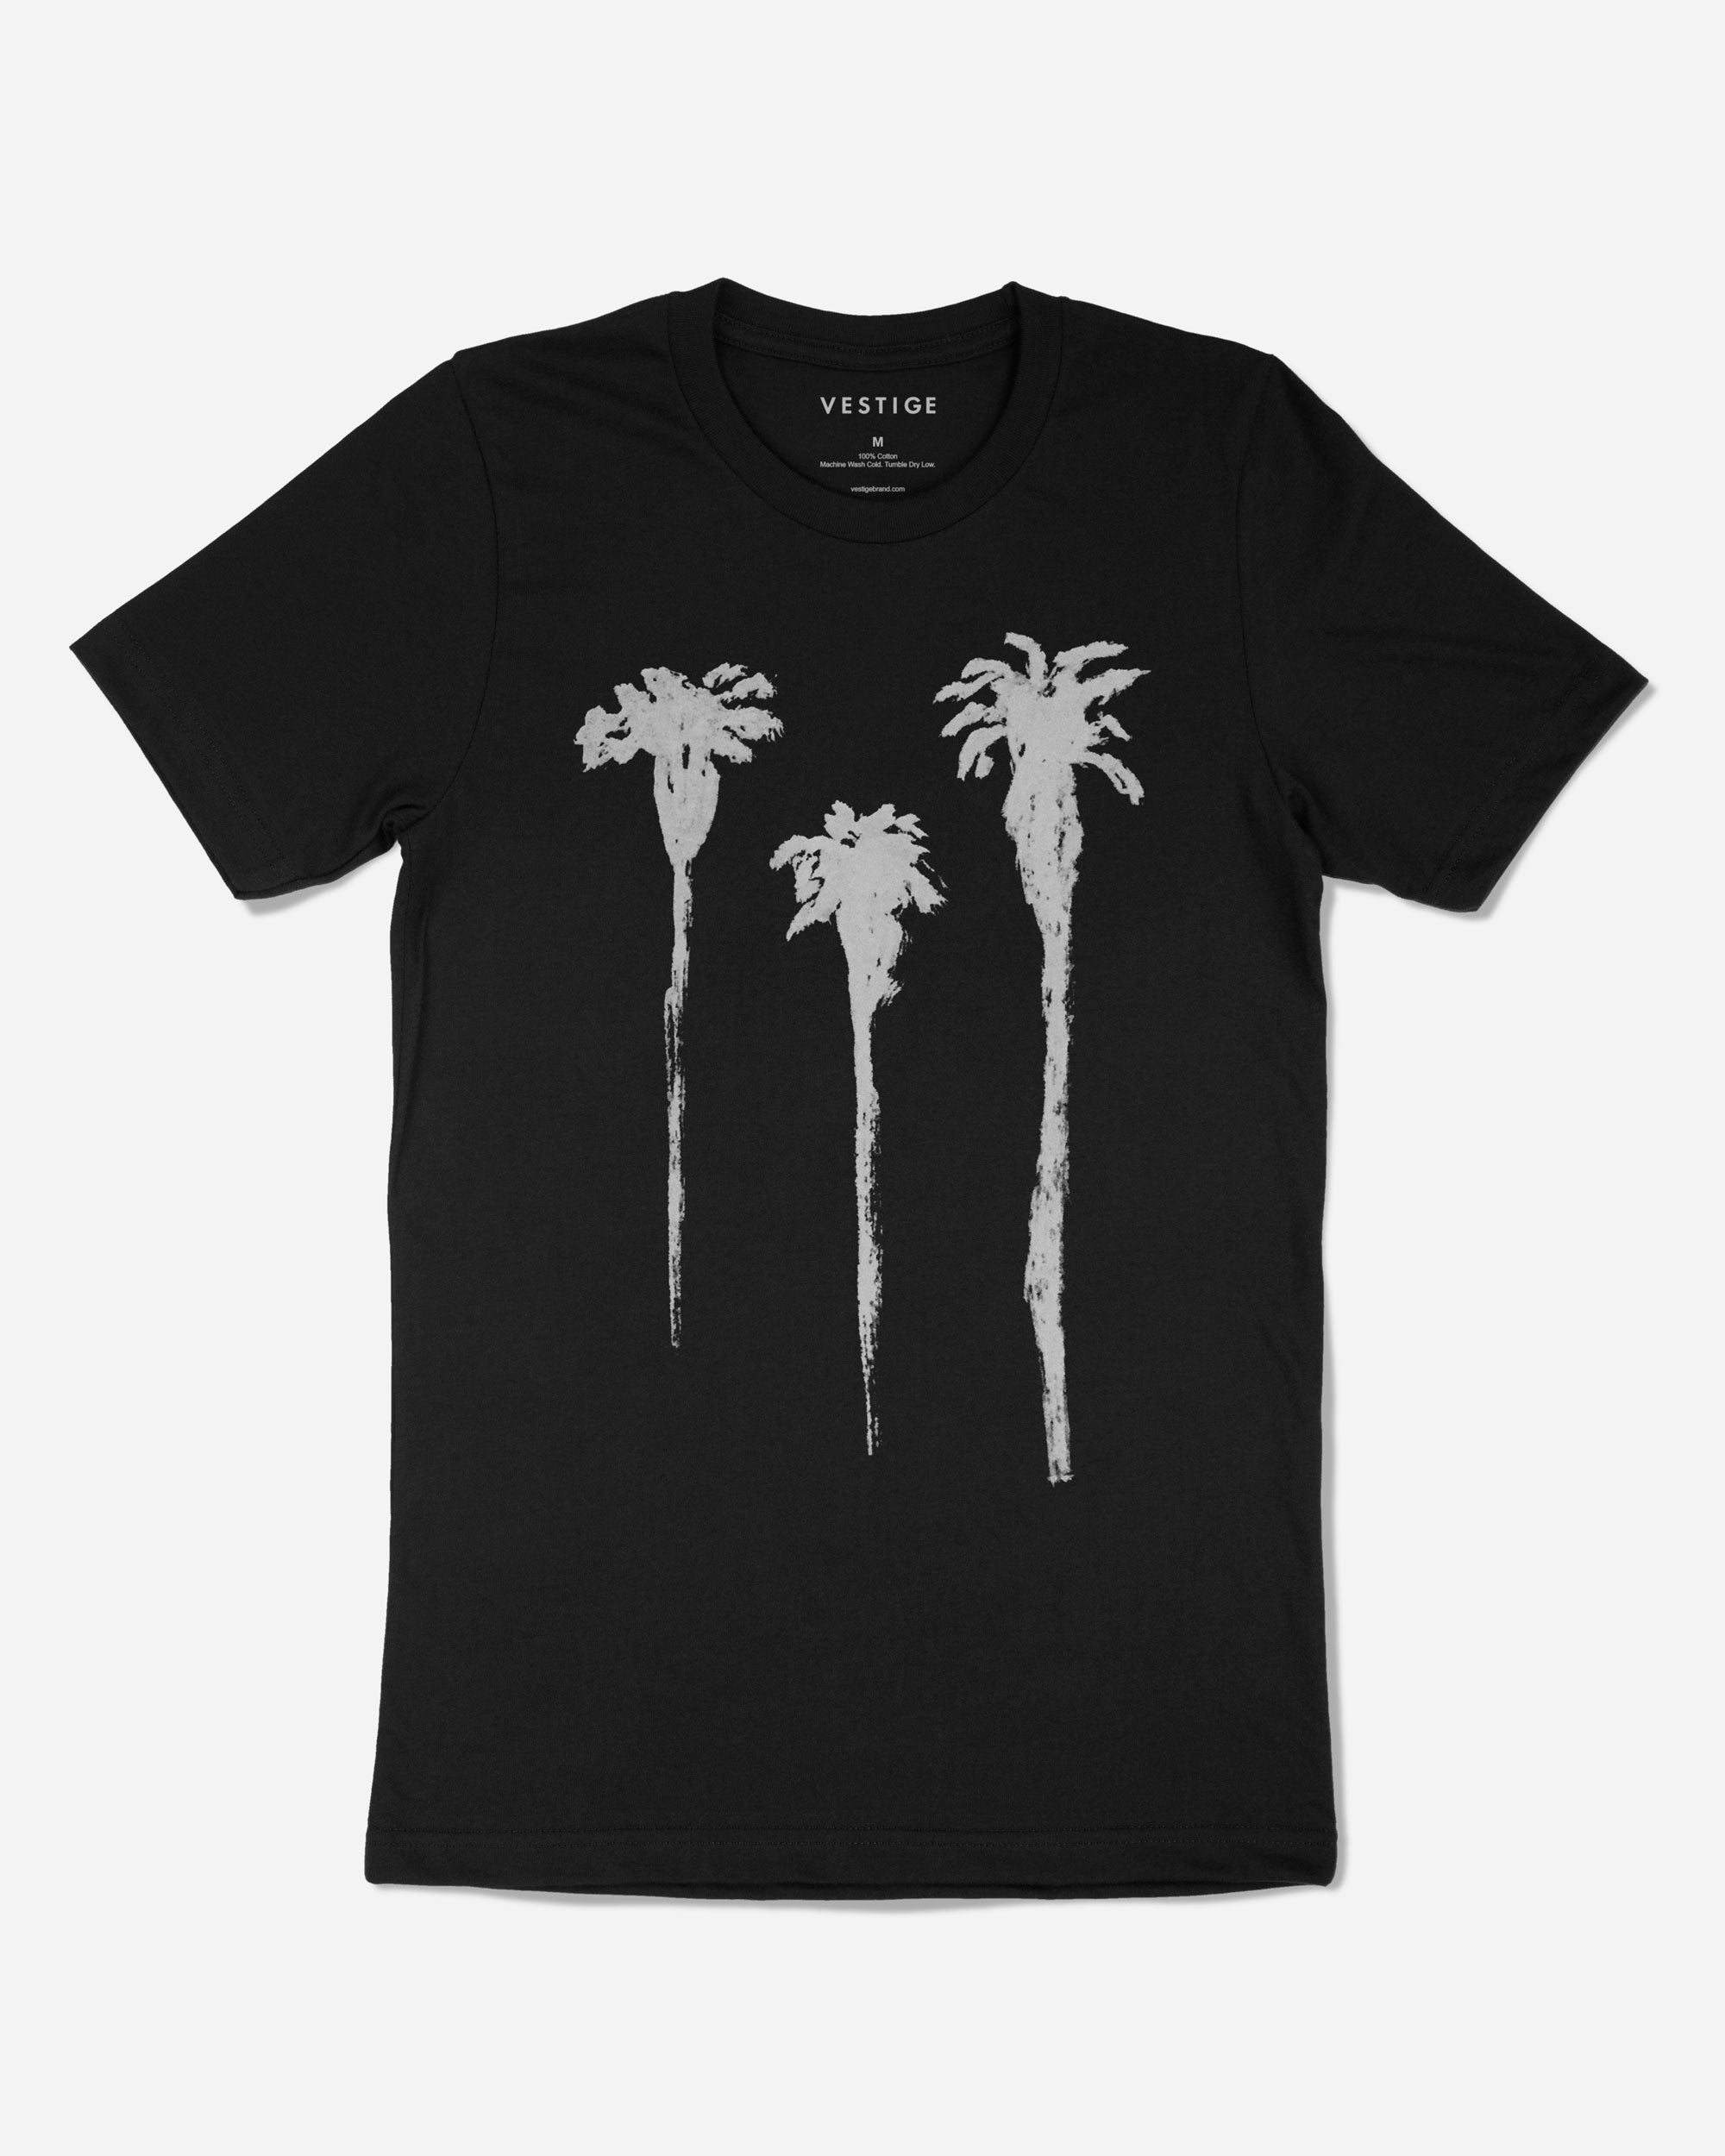 Tres Palm Redux T-Shirt, Black